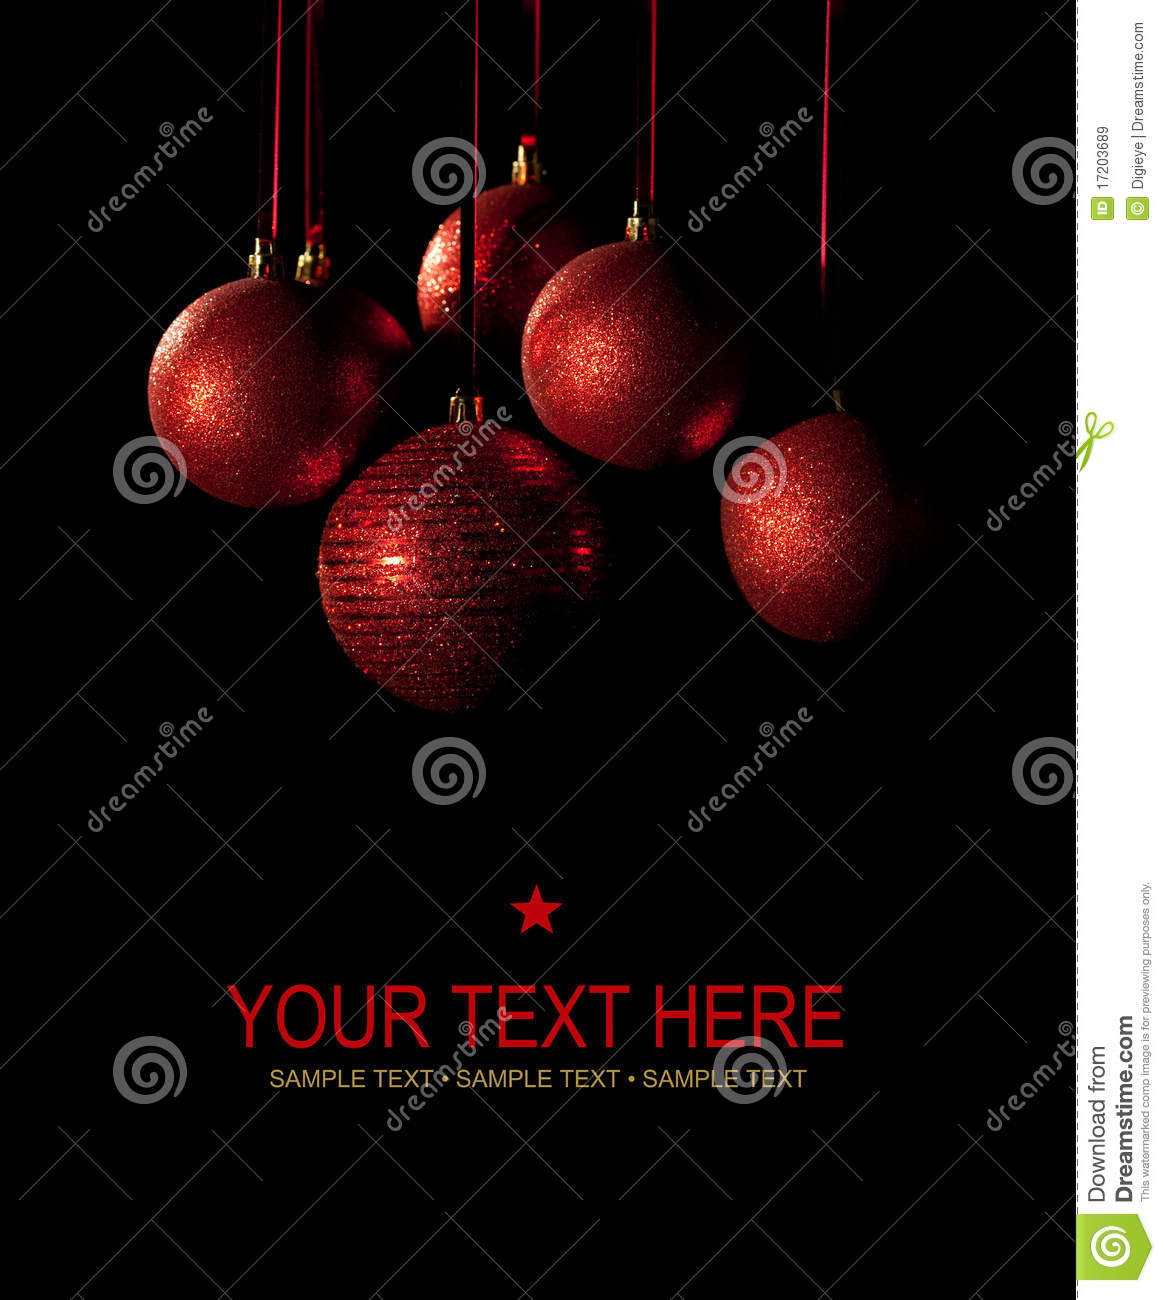 Christmas card - red balls on black background